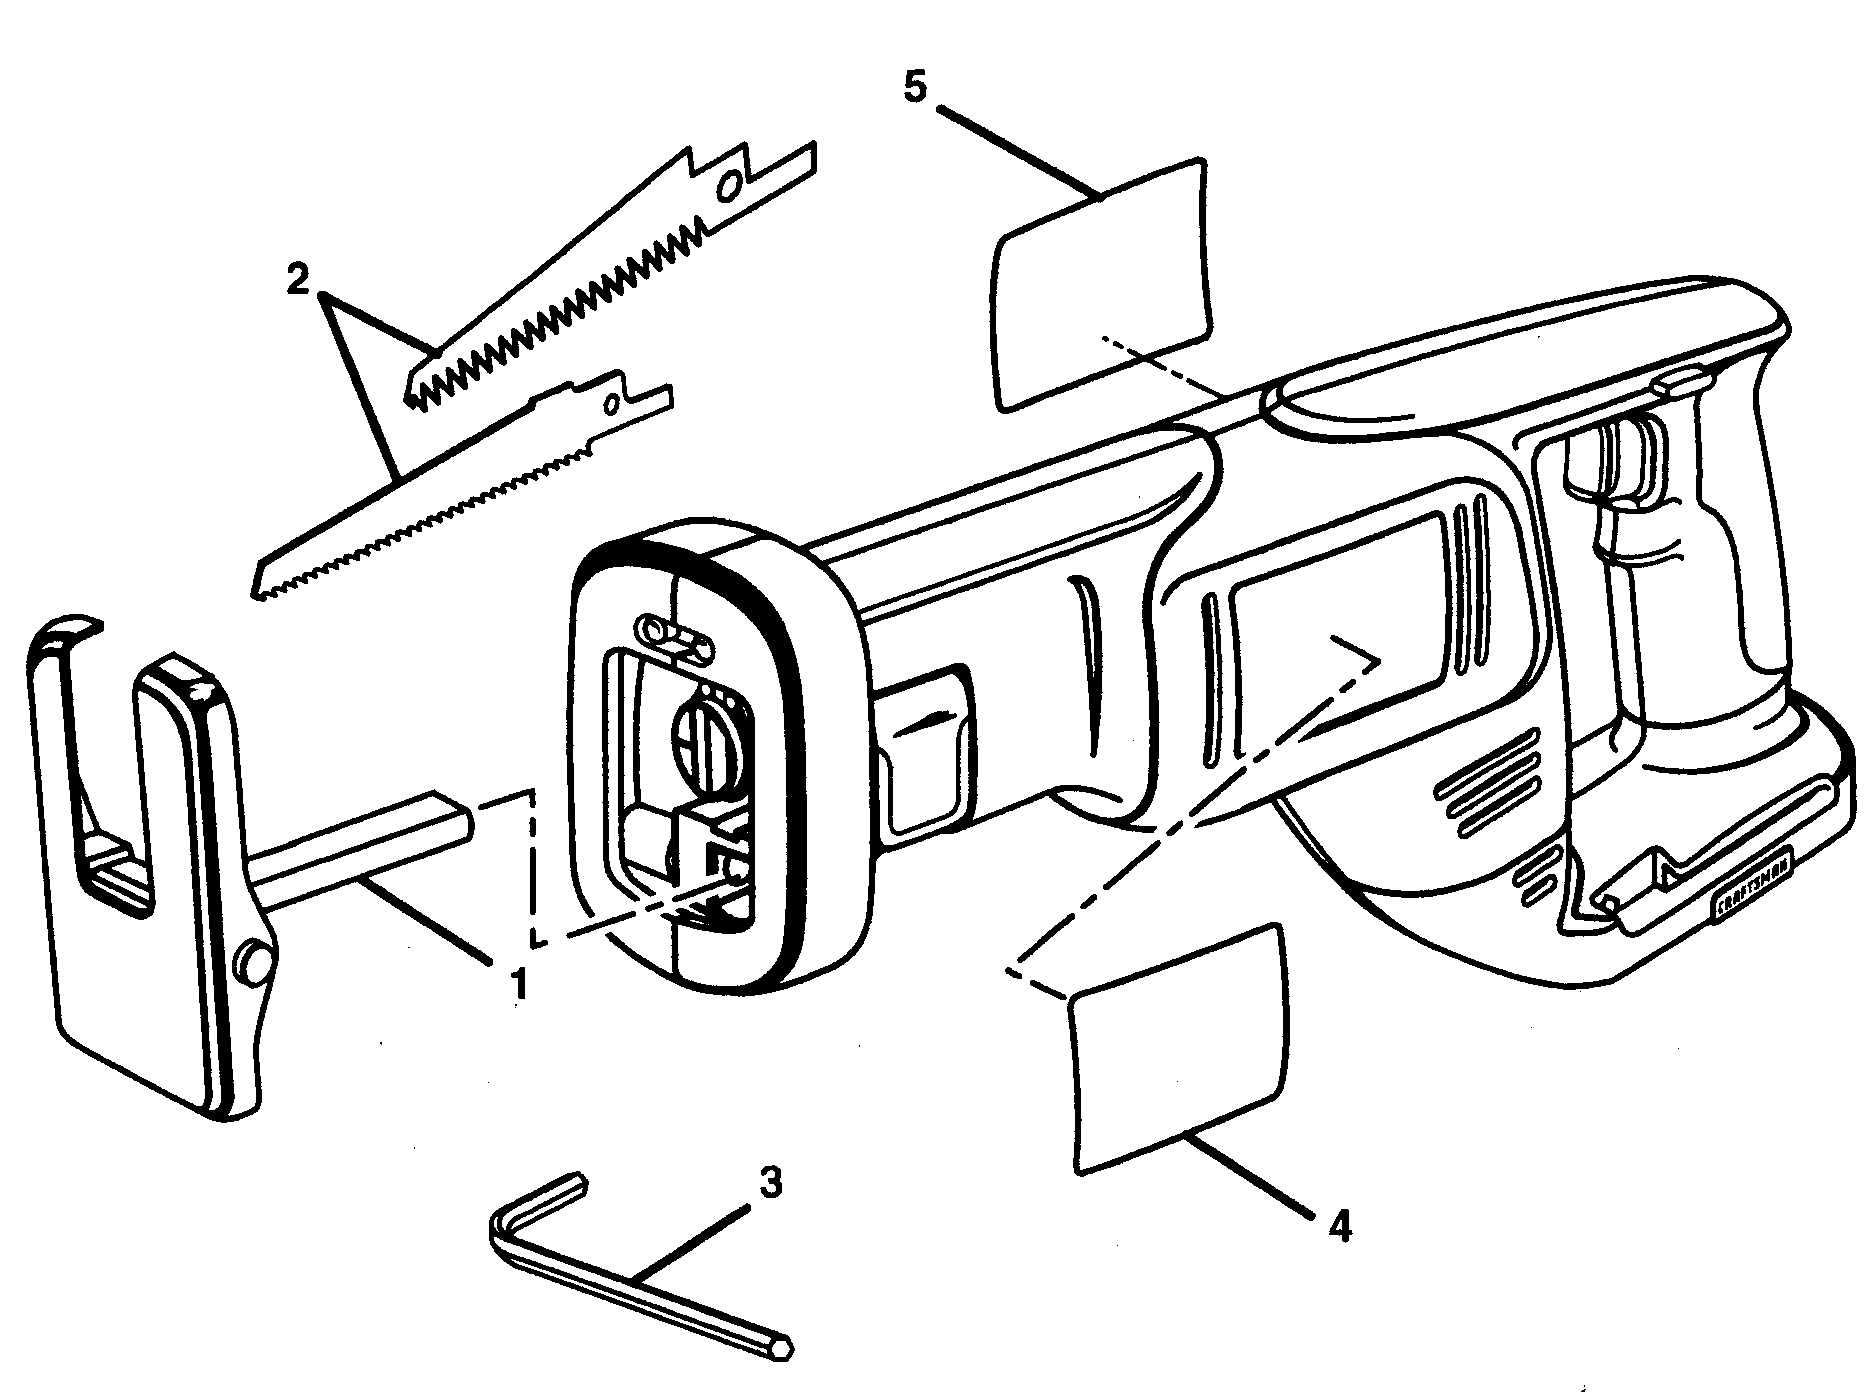 hight resolution of wiring diagram for sears craftsman reciprocating saw